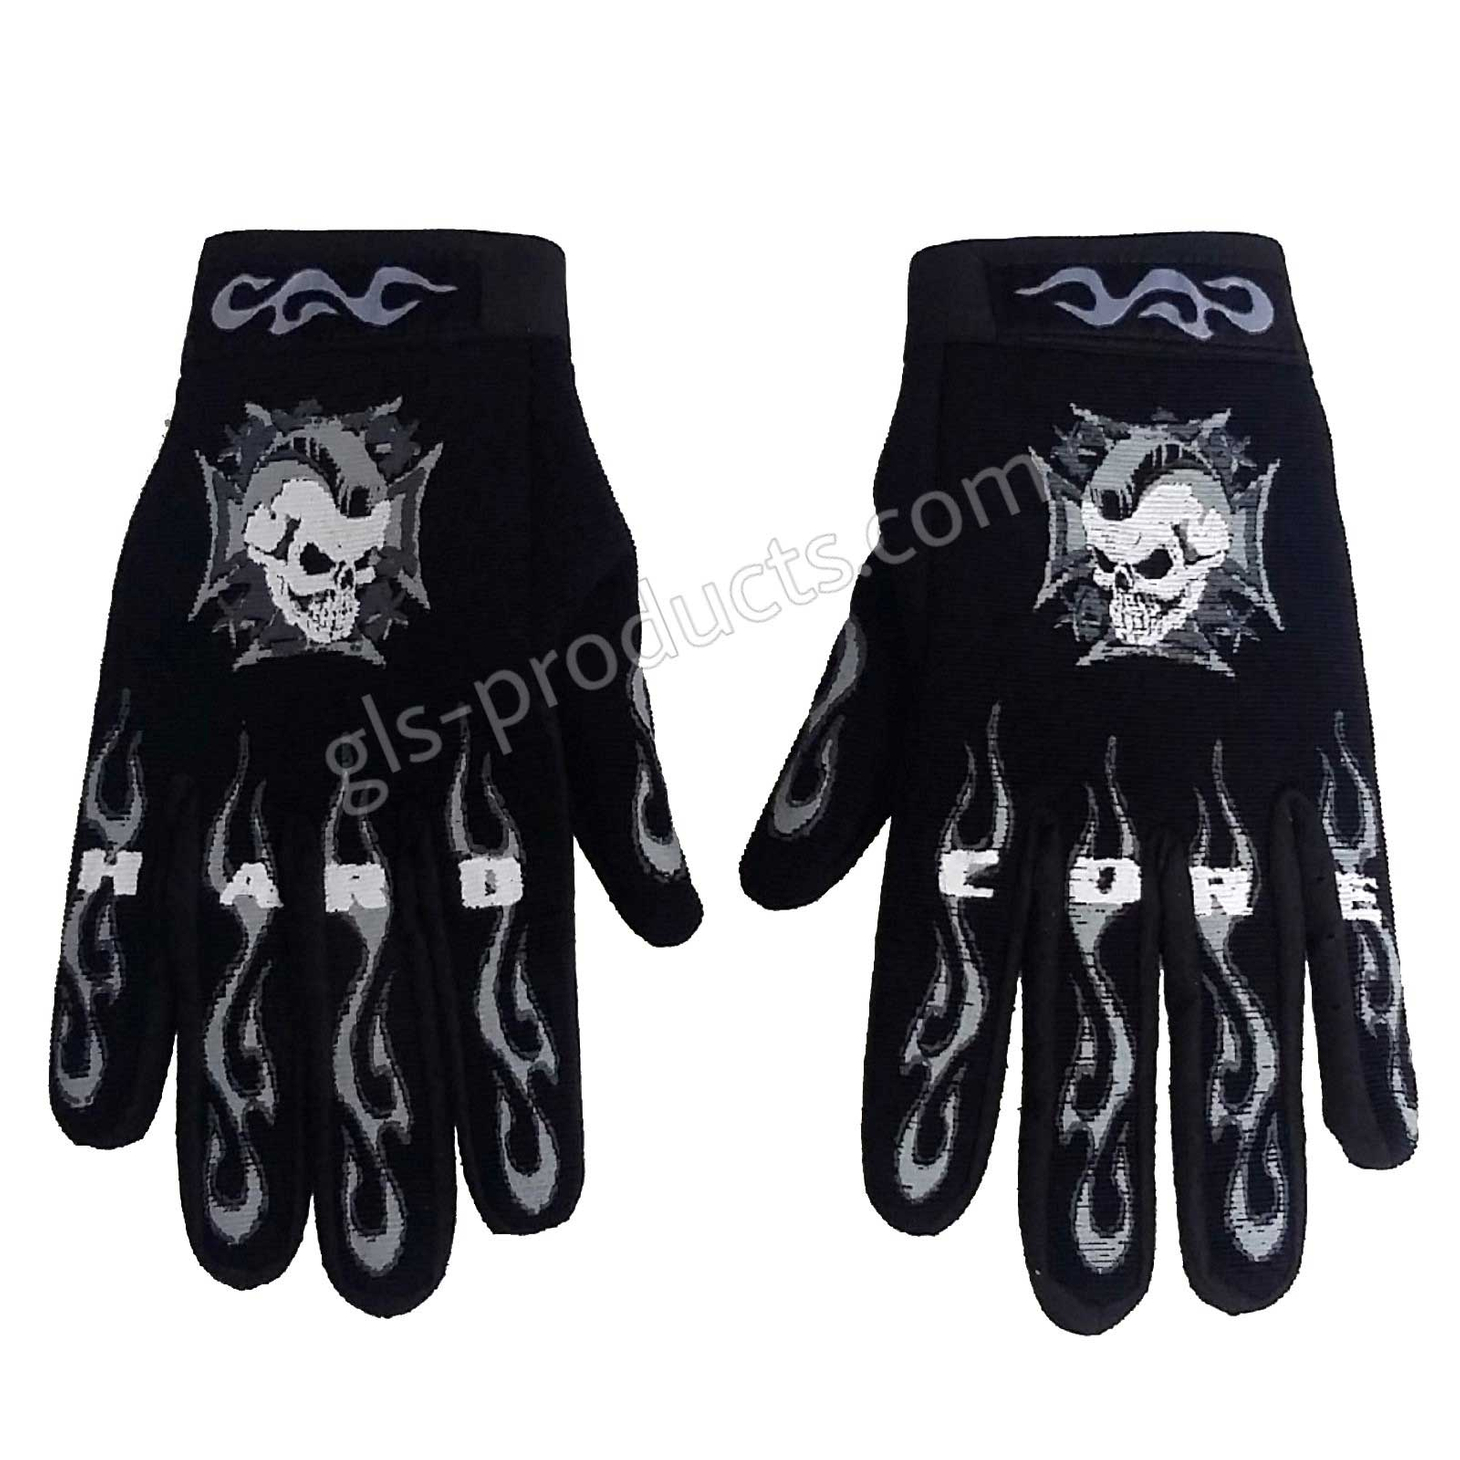 Mechanic Gloves, Flexible Neoprene Gloves – Picture 10